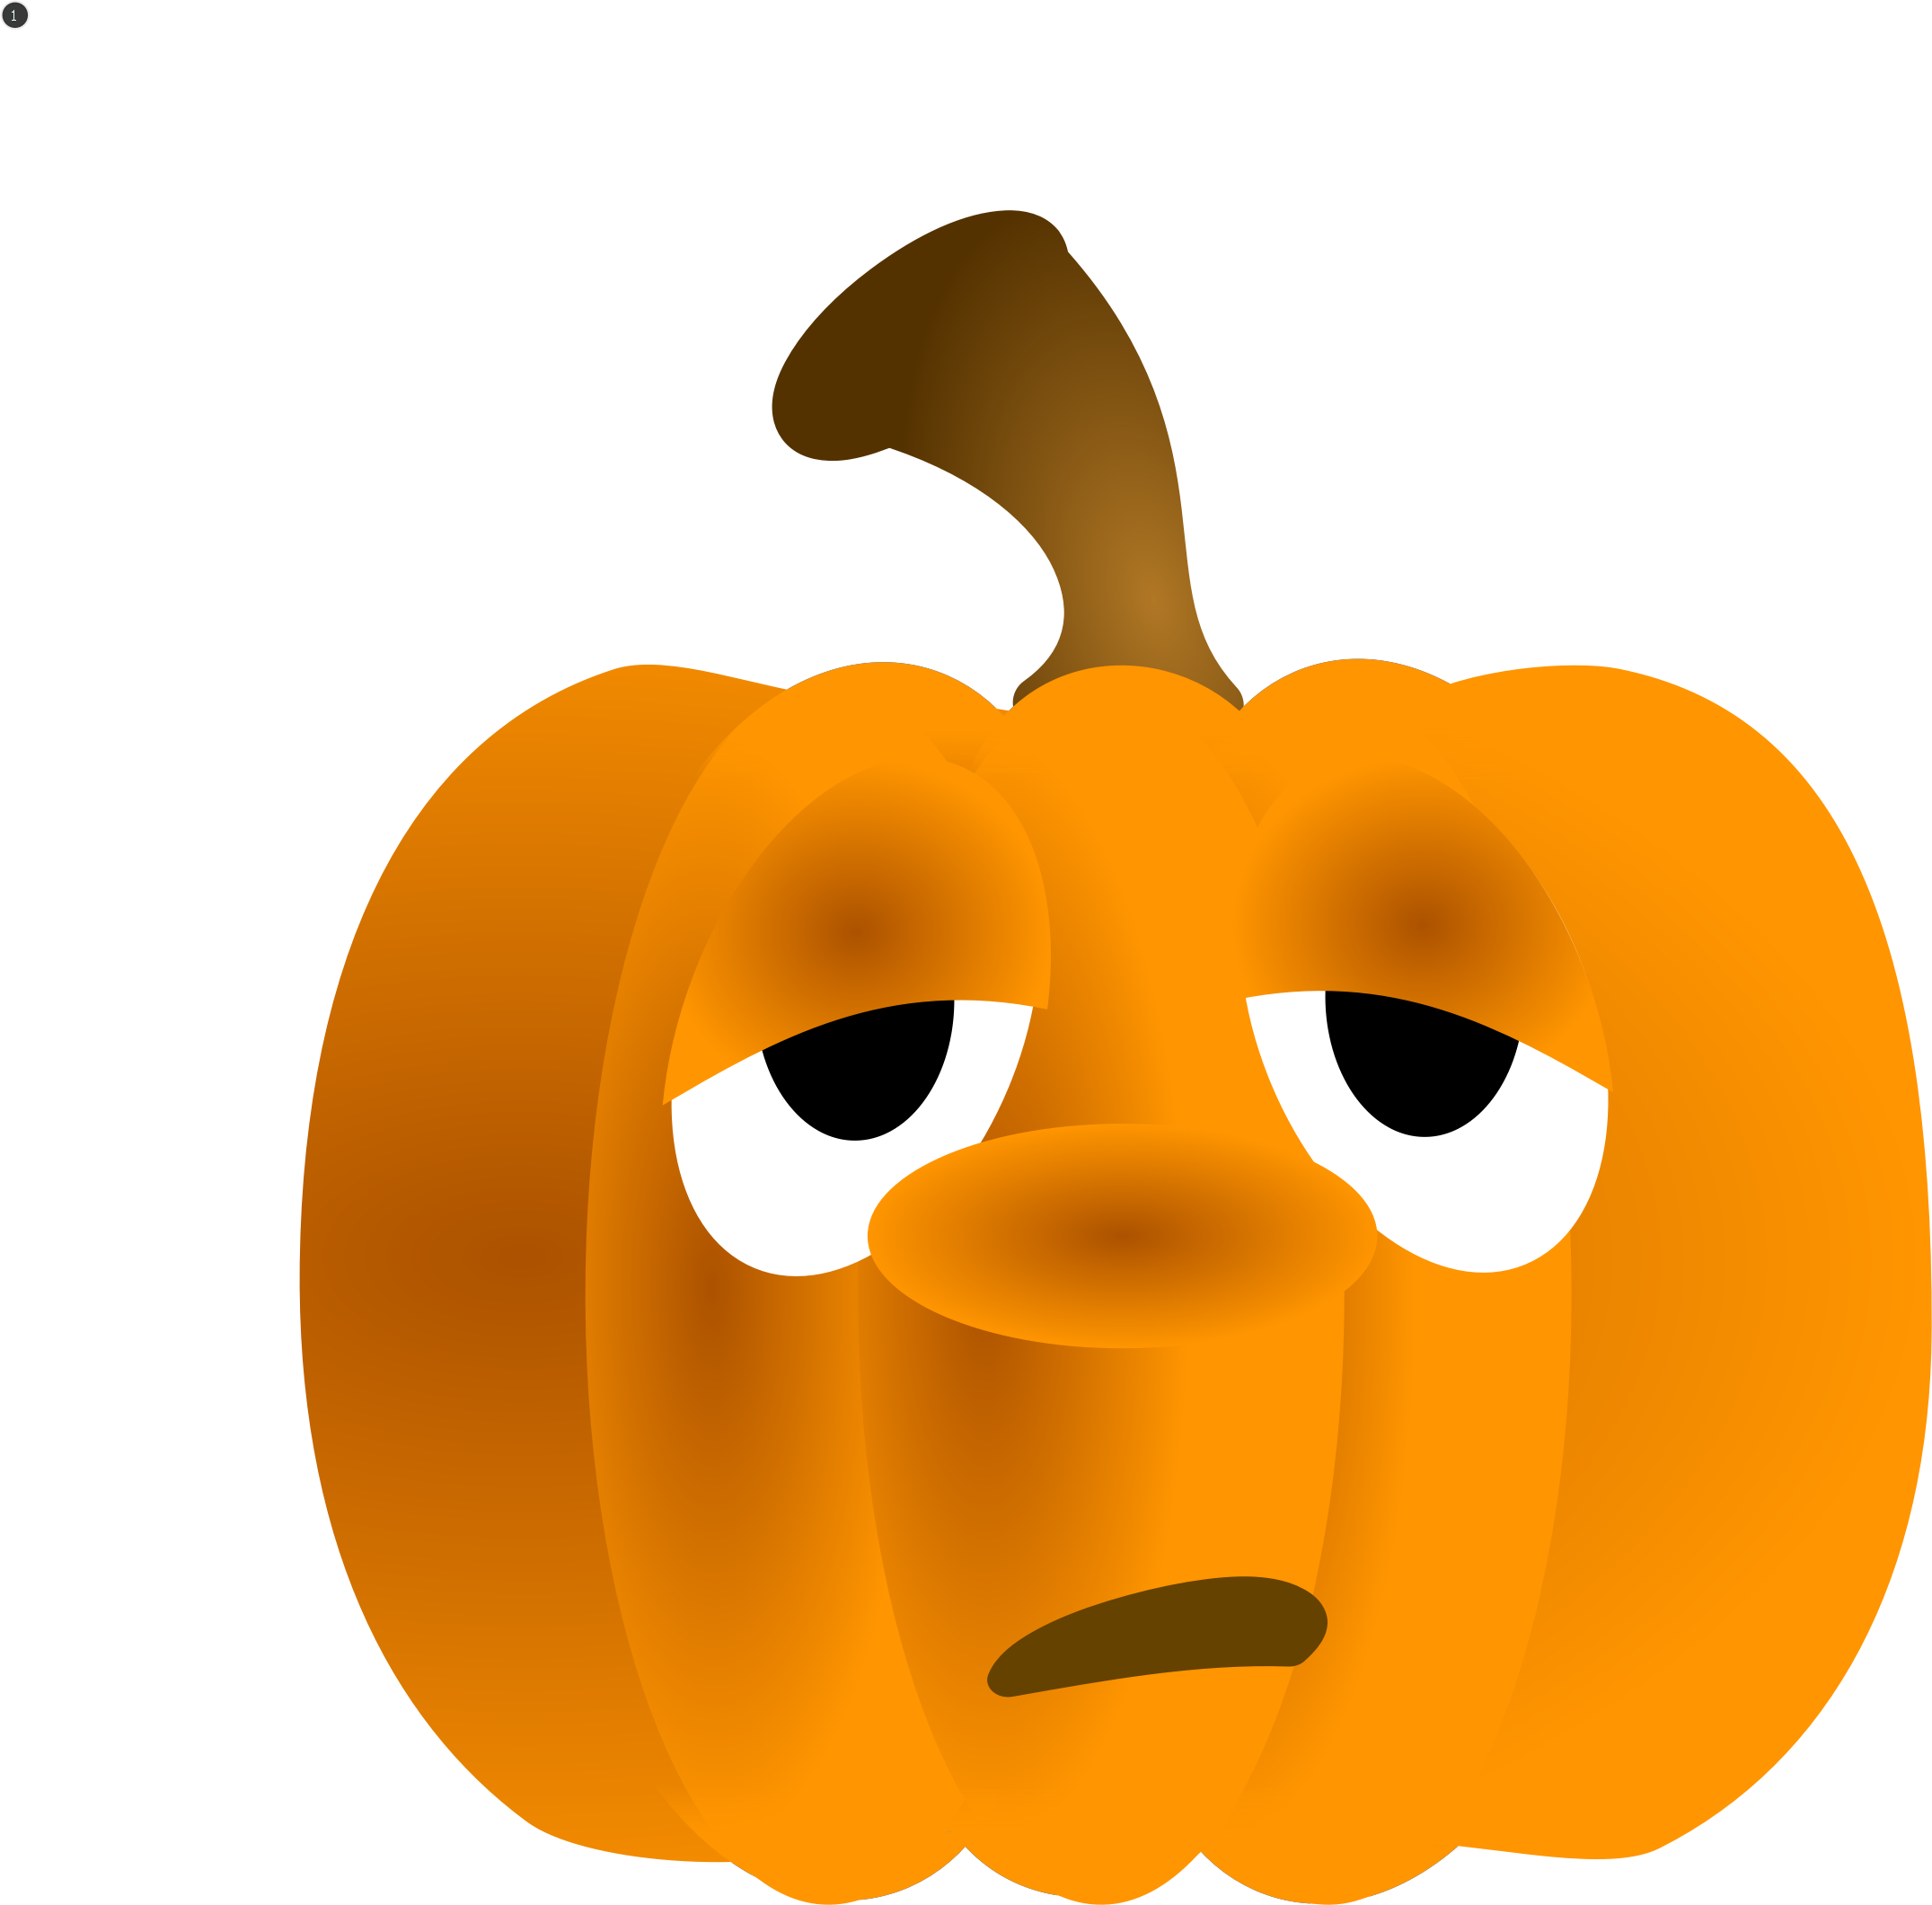 Clipart unhappy pumpkin protesting clipart transparent download Clipart - Pumpkin Animation clipart transparent download